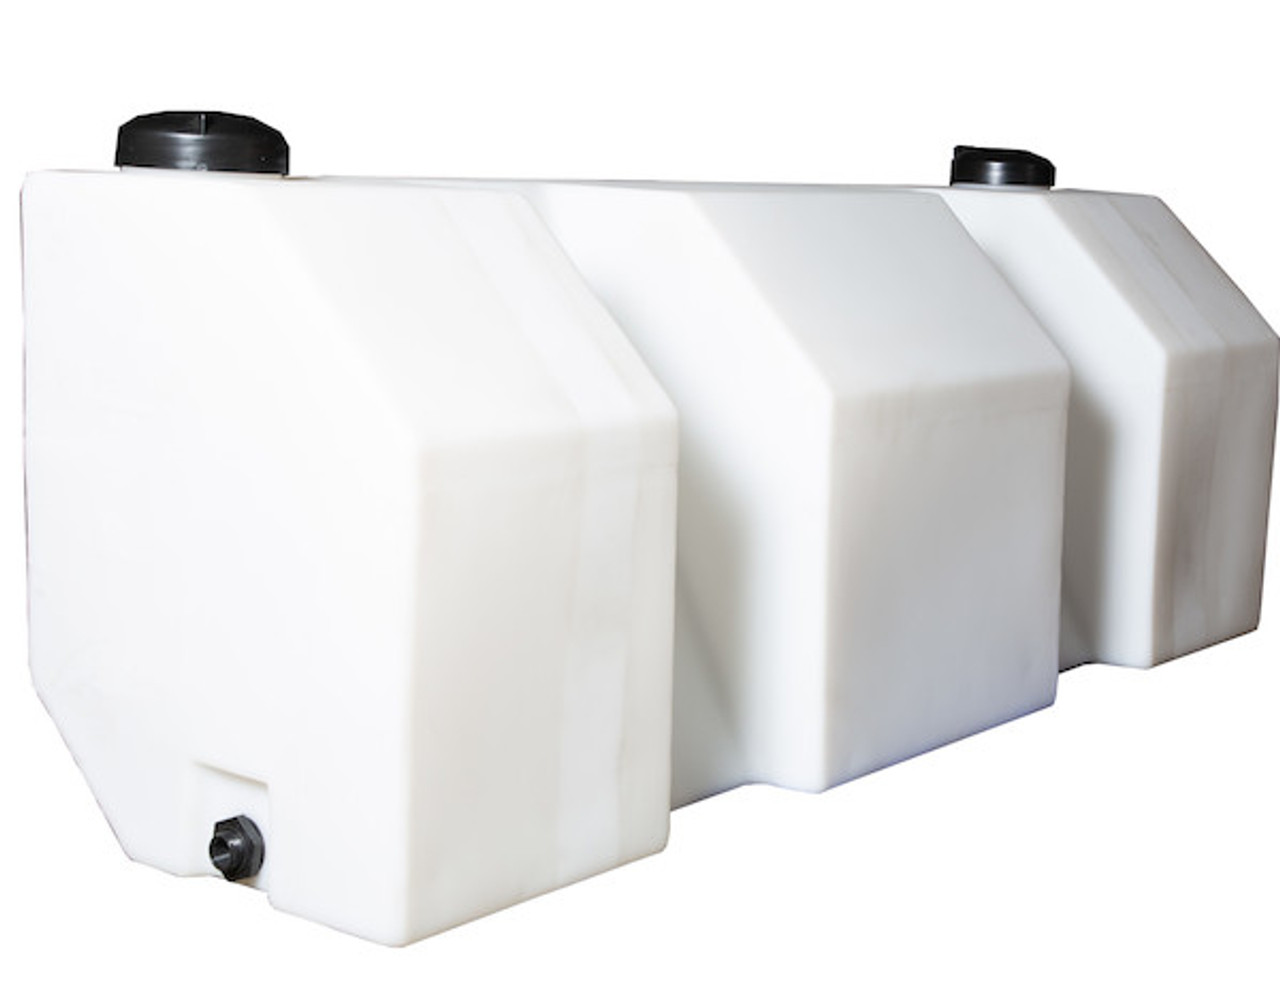 LS5H Buyers SaltDogg Pre-Wet Kit With Two 105-Gallon Wedge Poly V-Box Mount Reservoir Picture # 4